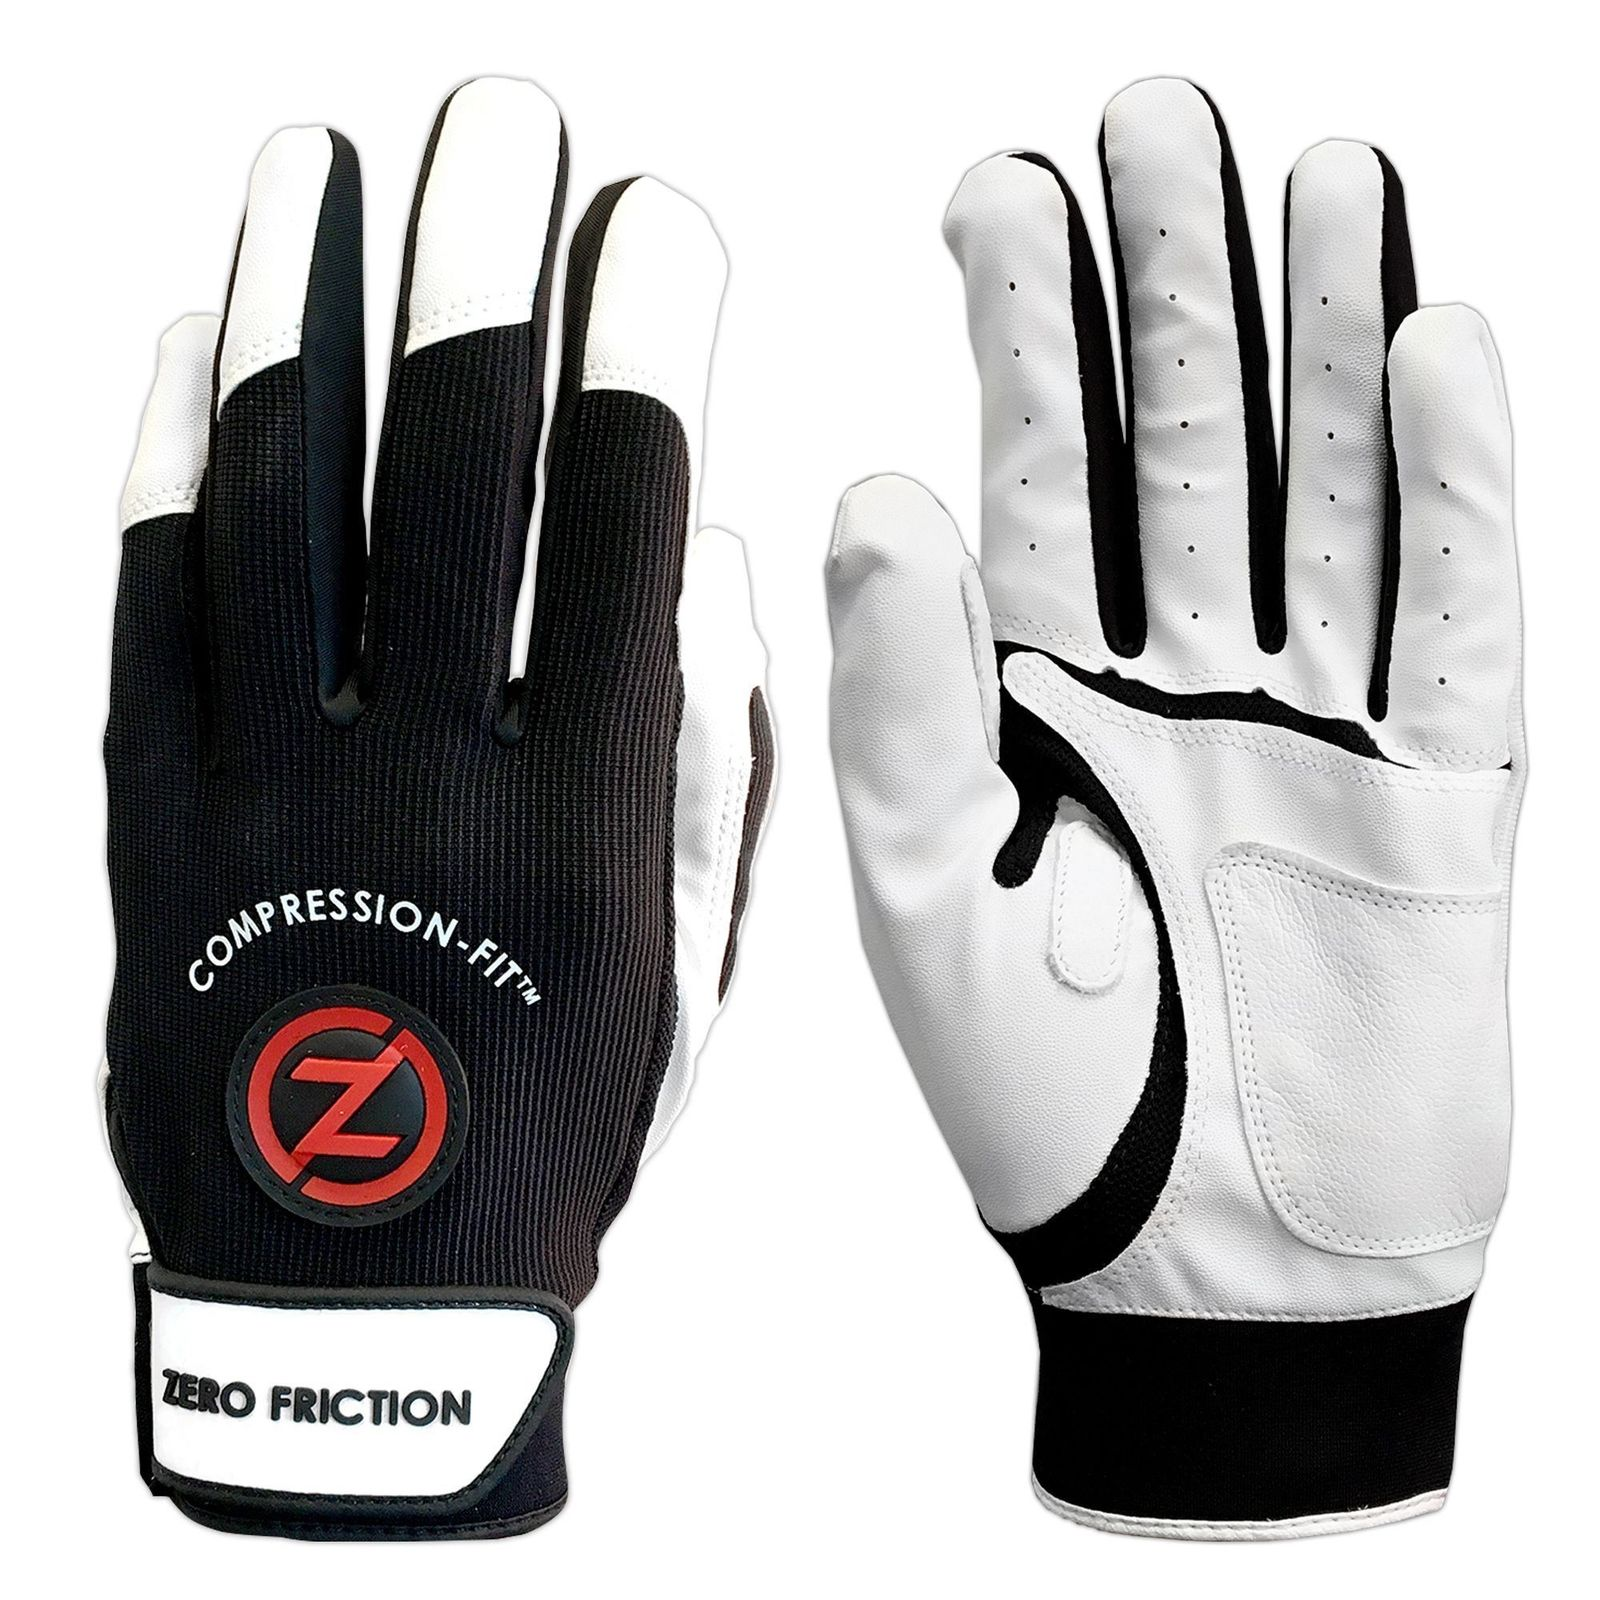 Zero Friction Men's Performance Batting Gloves, Black